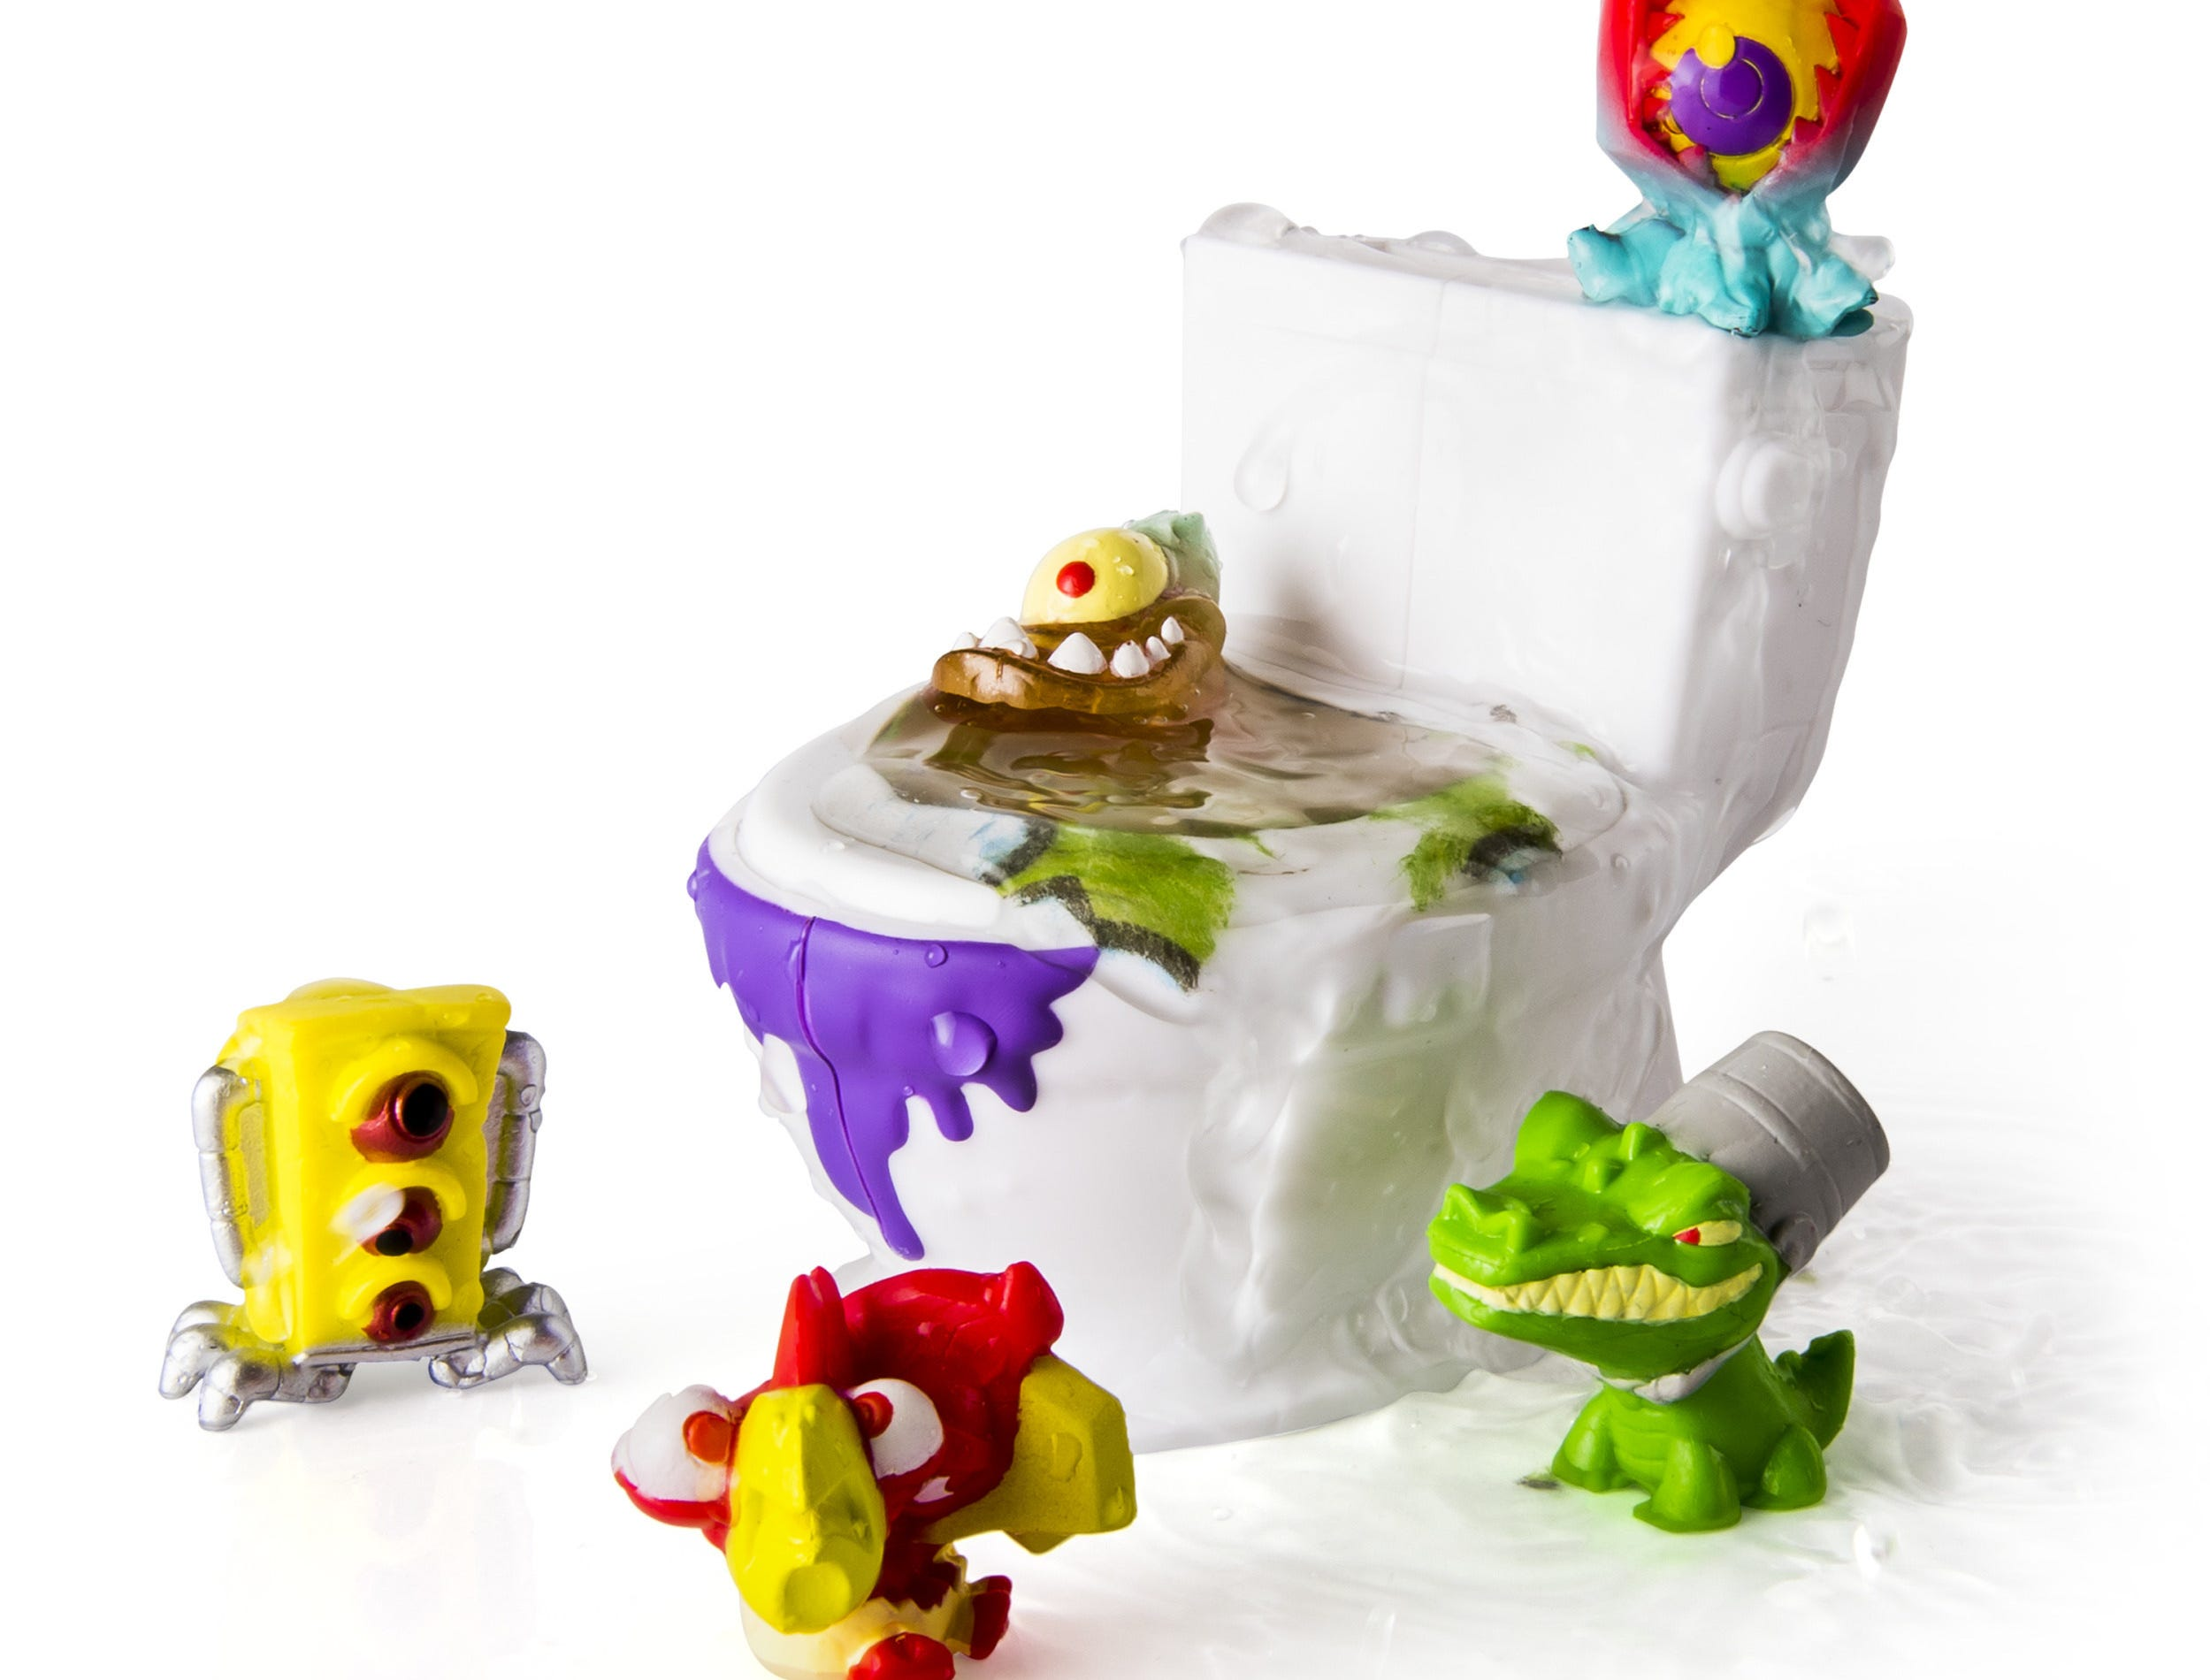 Flush Force creatures come from deep inside the bowels of Flushville and have been mutated by toxic sludge.